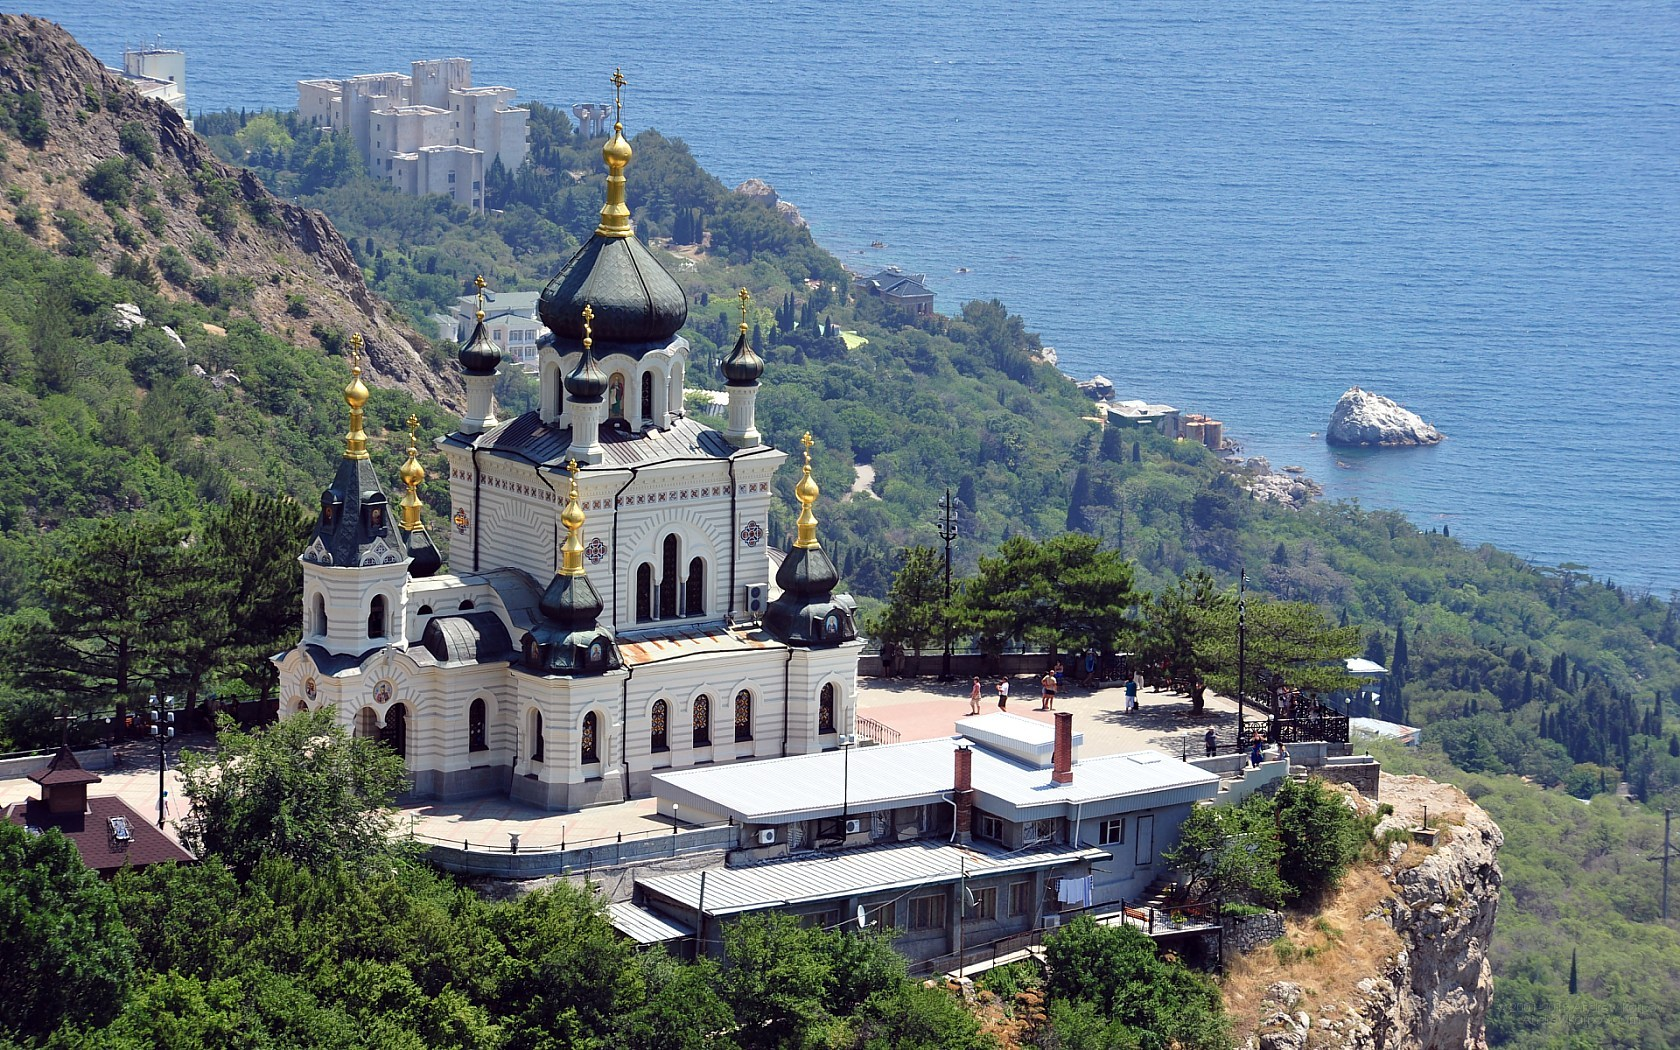 image-wallpaper-1680-1050-Crimea-the-Foros-church-Crimean-N7153046